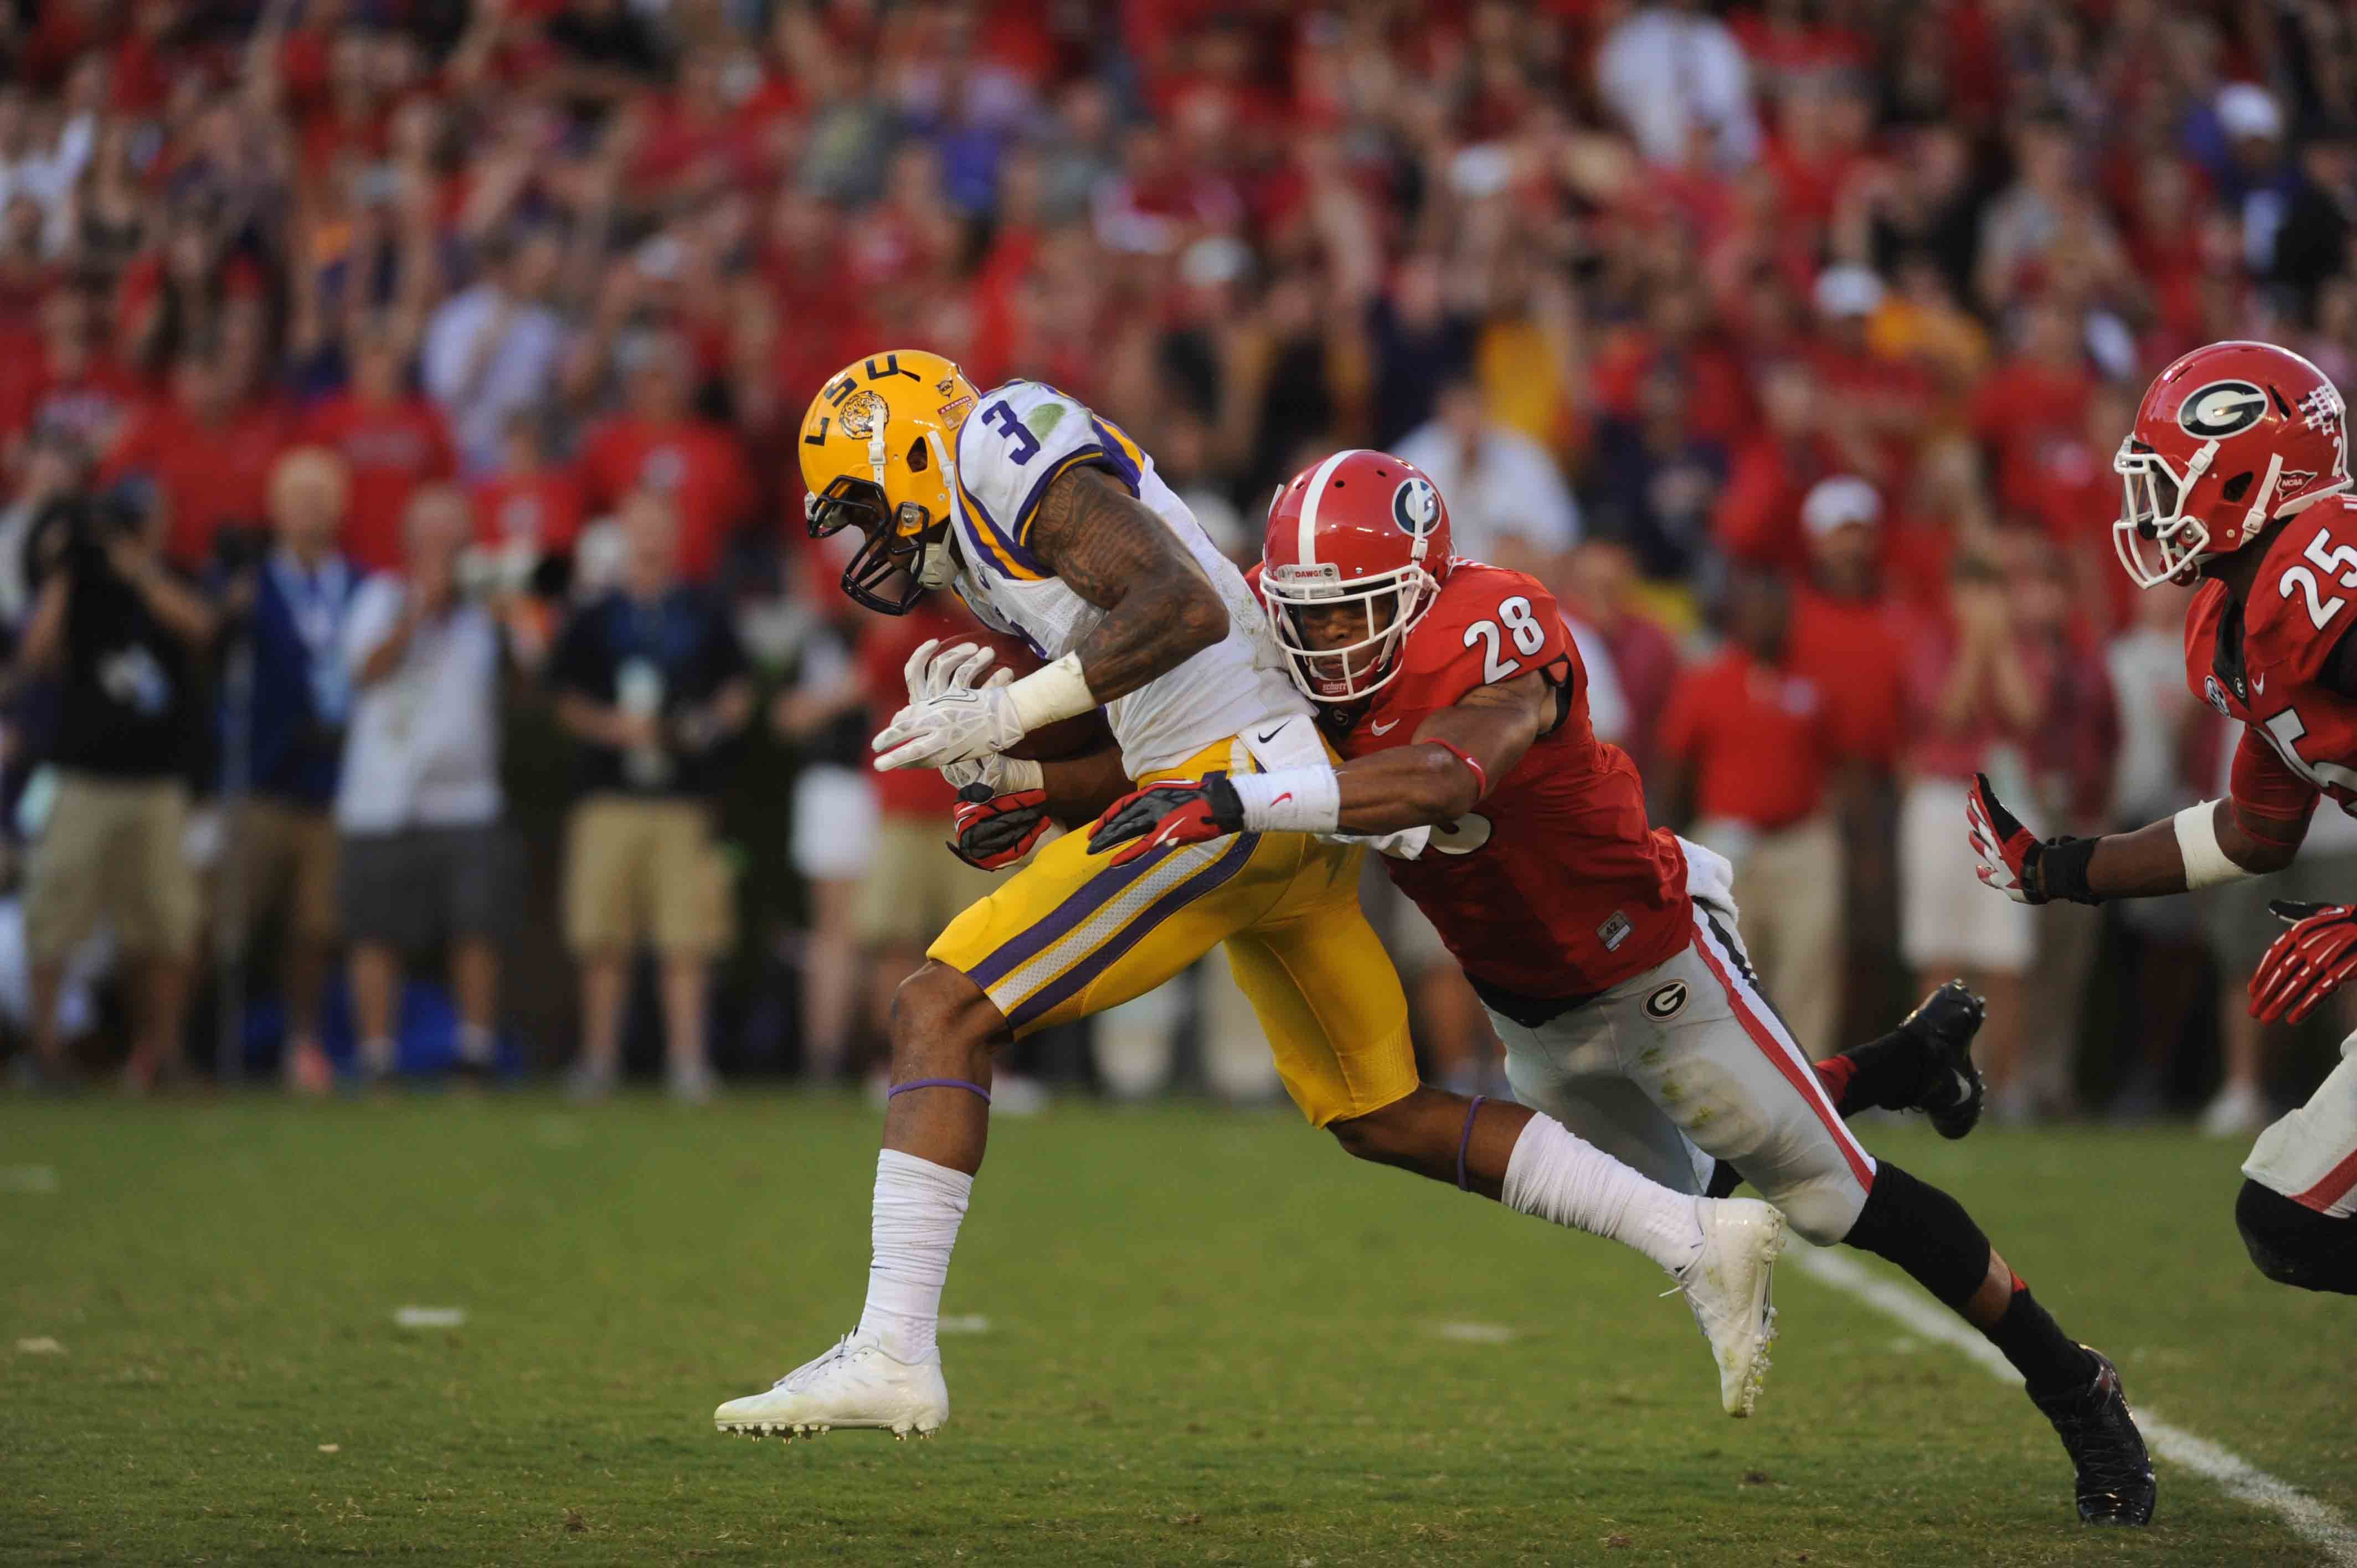 LSU's Odell Beckham (3) is brought down by Georgia's Tray Mathews on Saturday. (Source: Georgia Athletics)